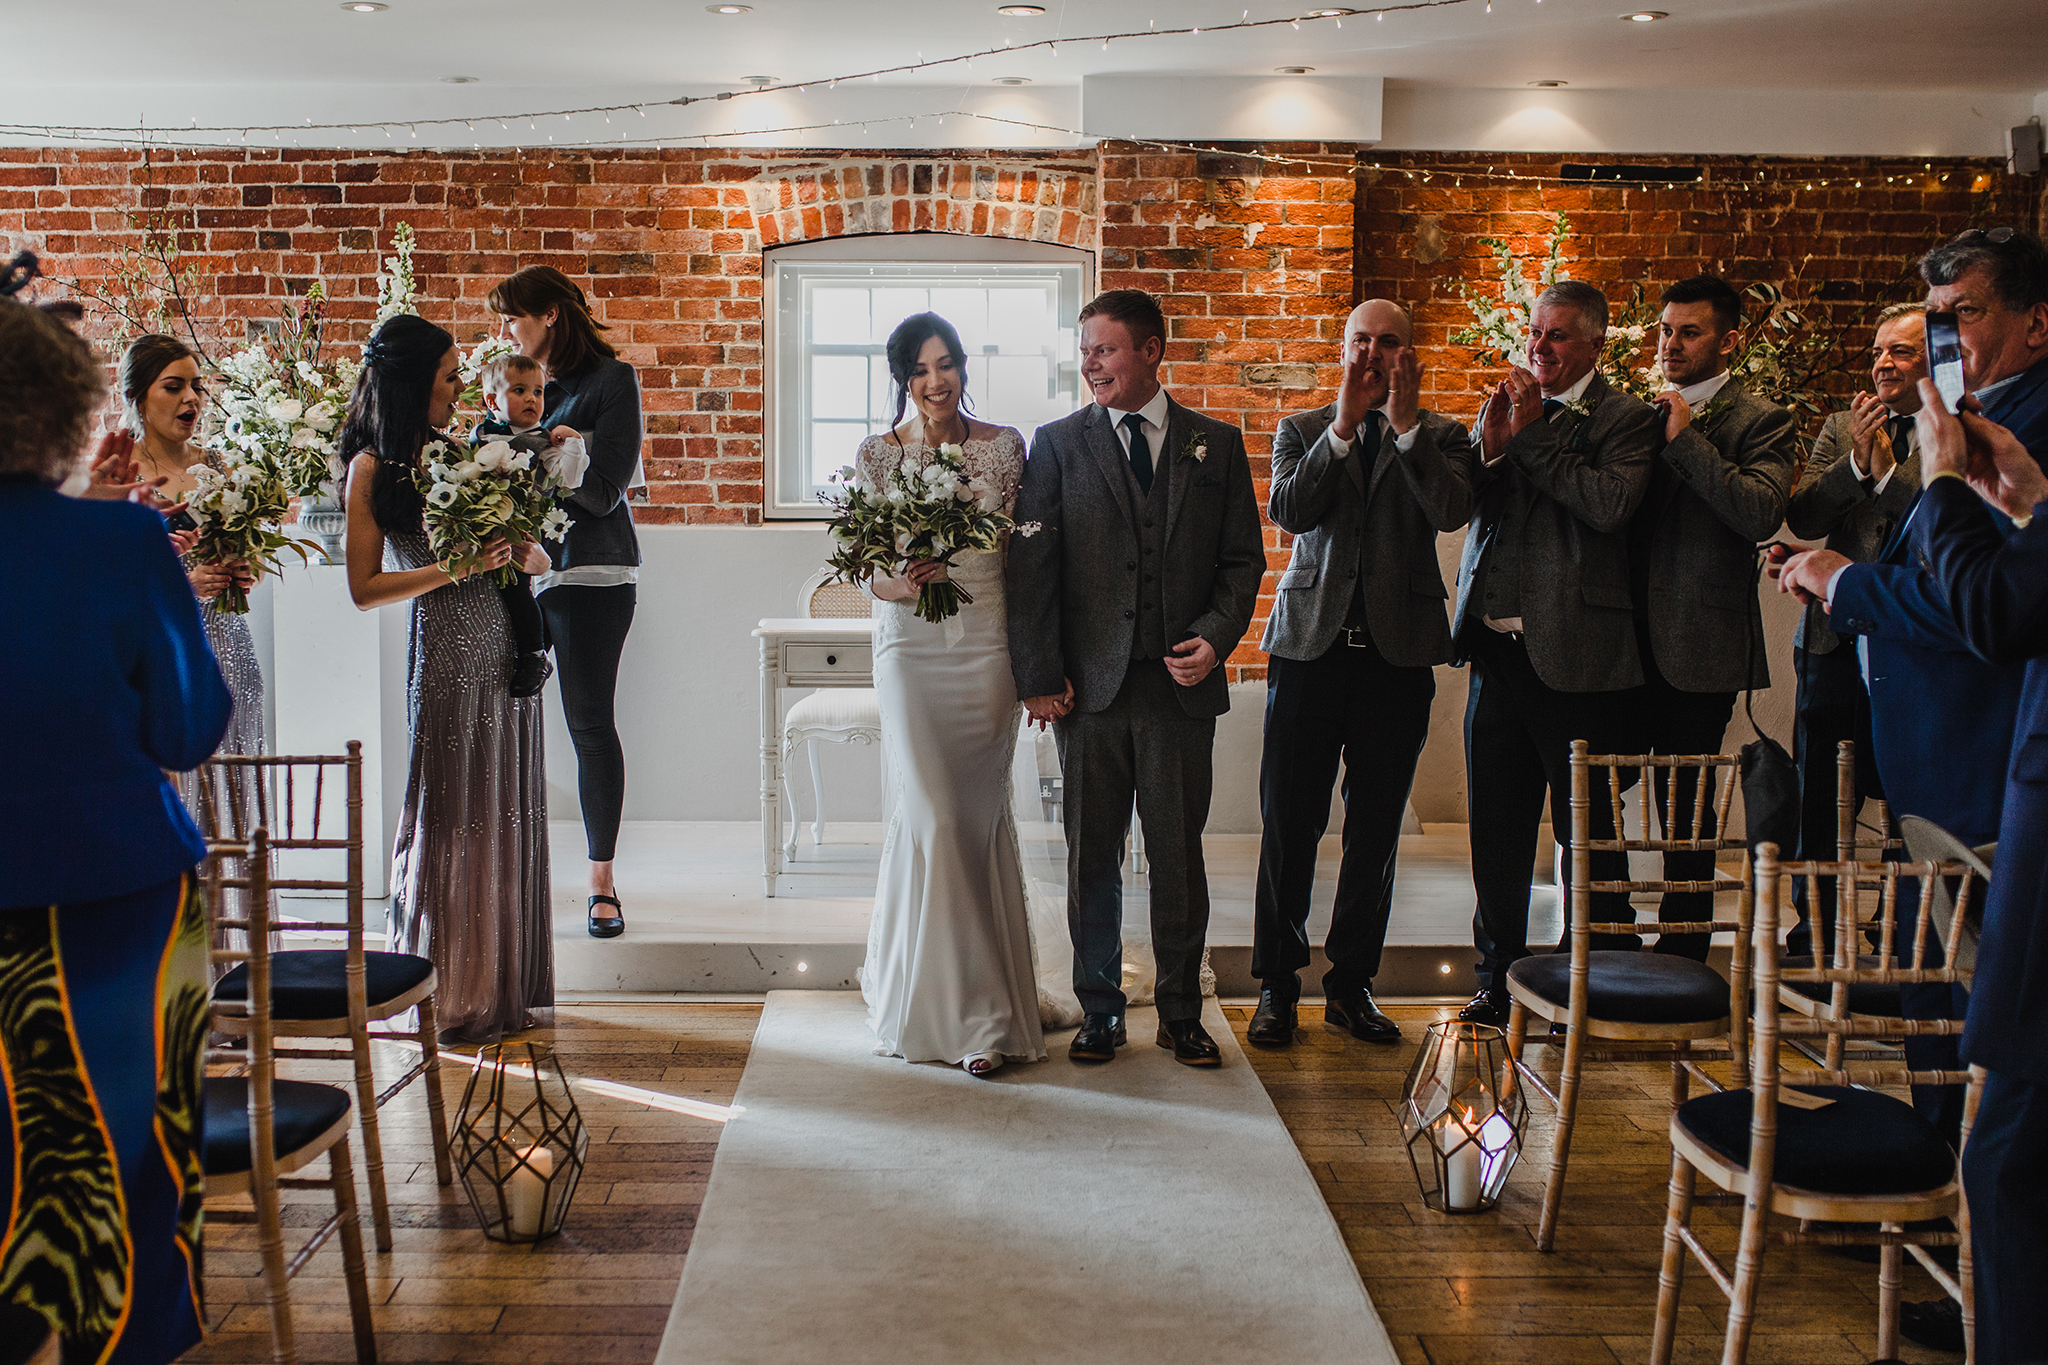 wide view of wedding room with bridal party